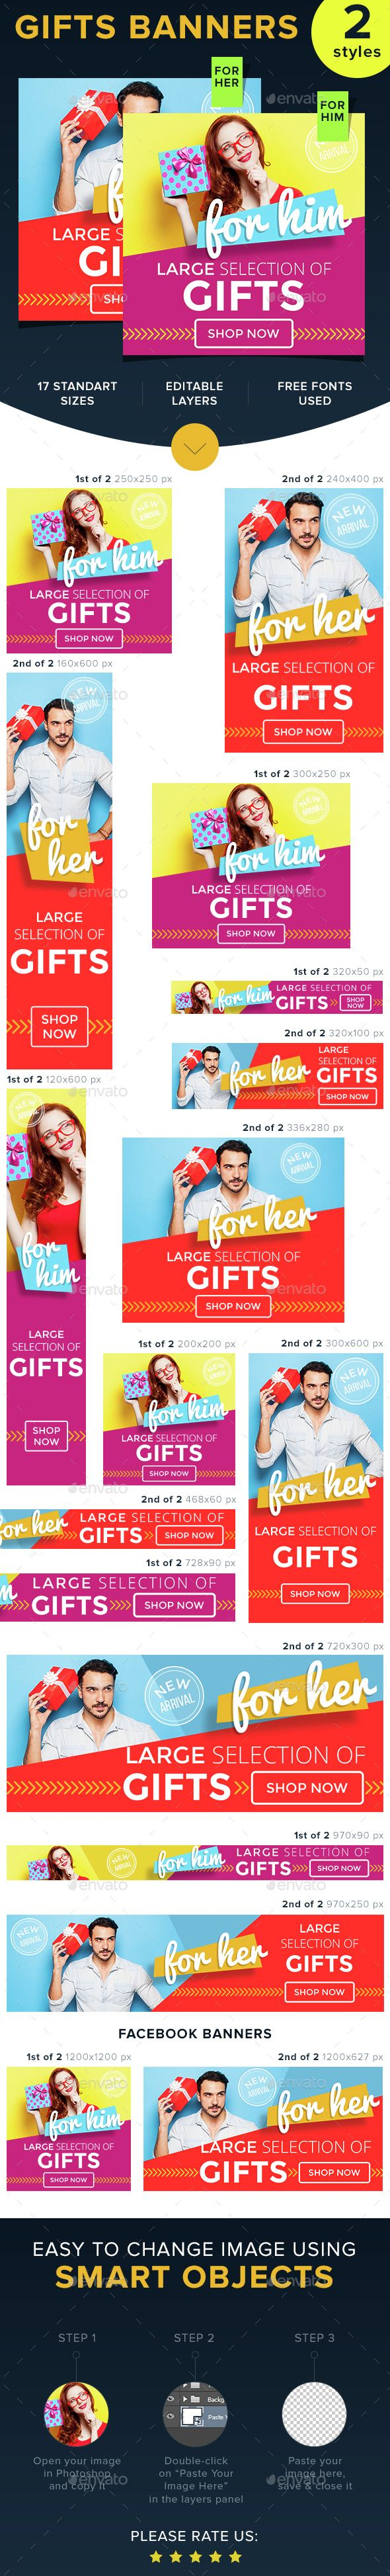 Web banners - Gifts for Her & Him. My new work:) More